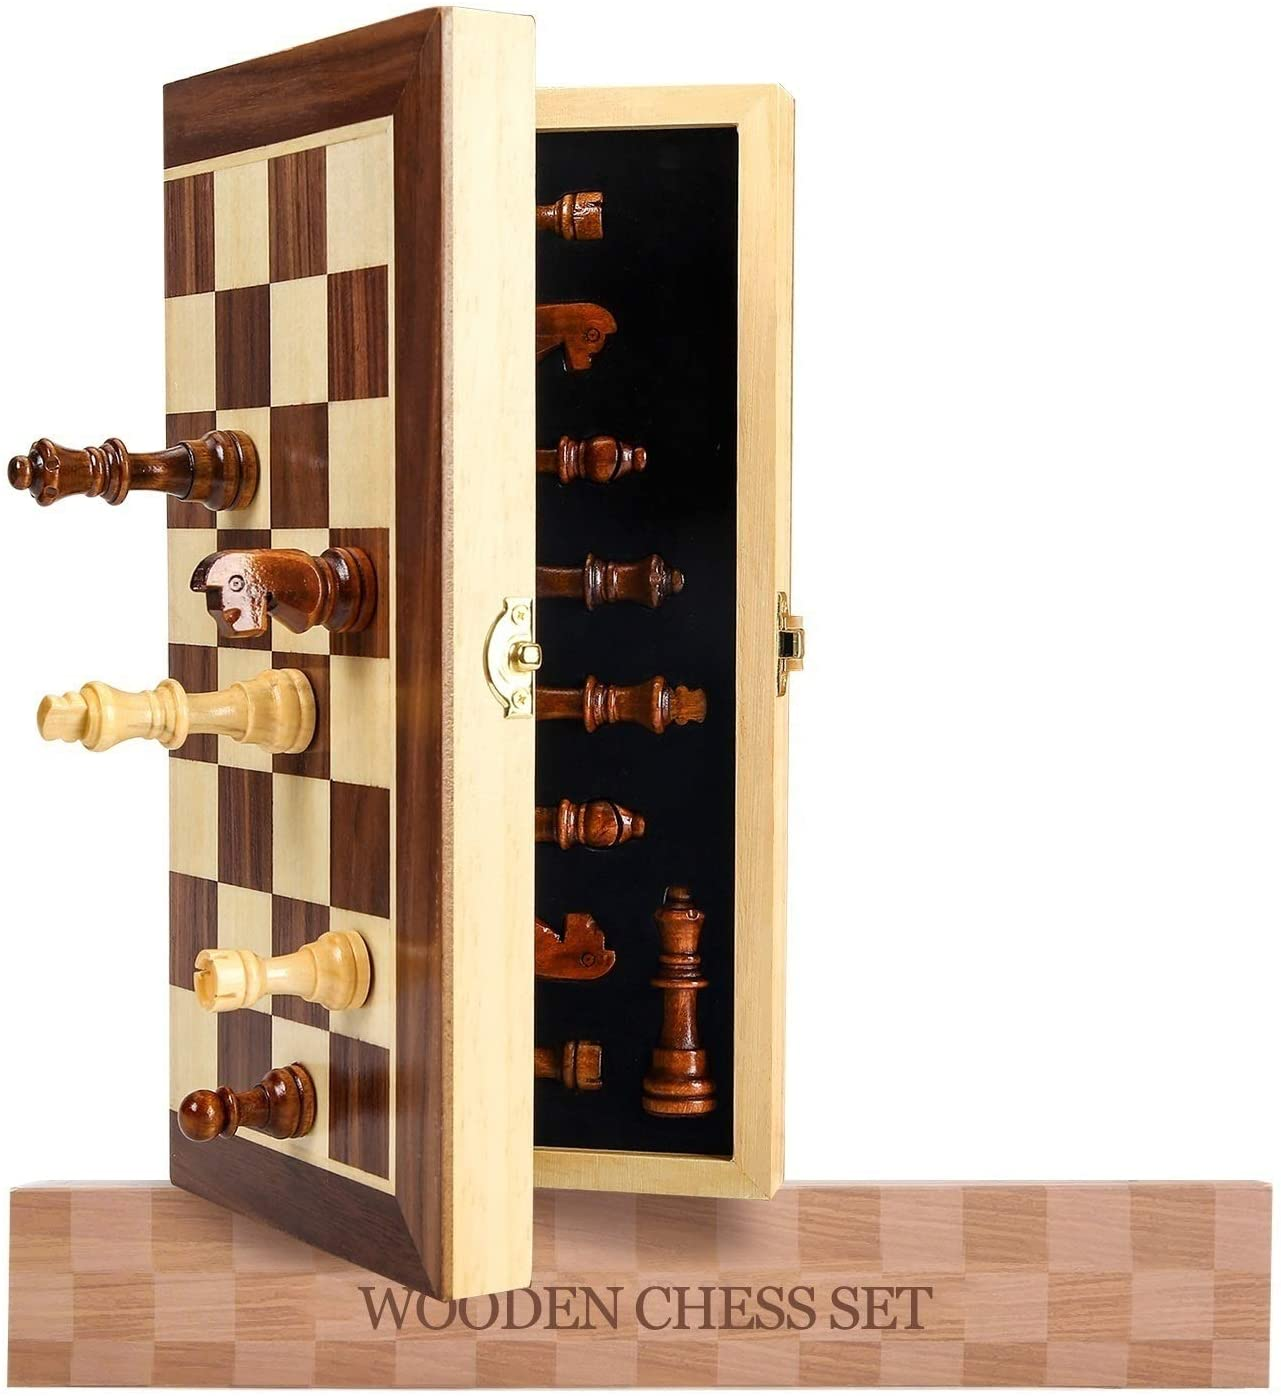 """Magnetic Chess Set, Wooden Chess Board Games for Adults, Folding Travel Chess Set Game Board with Magnetic Crafted Chess Pieces Includes Extra Queens, 12"""" x 12"""""""